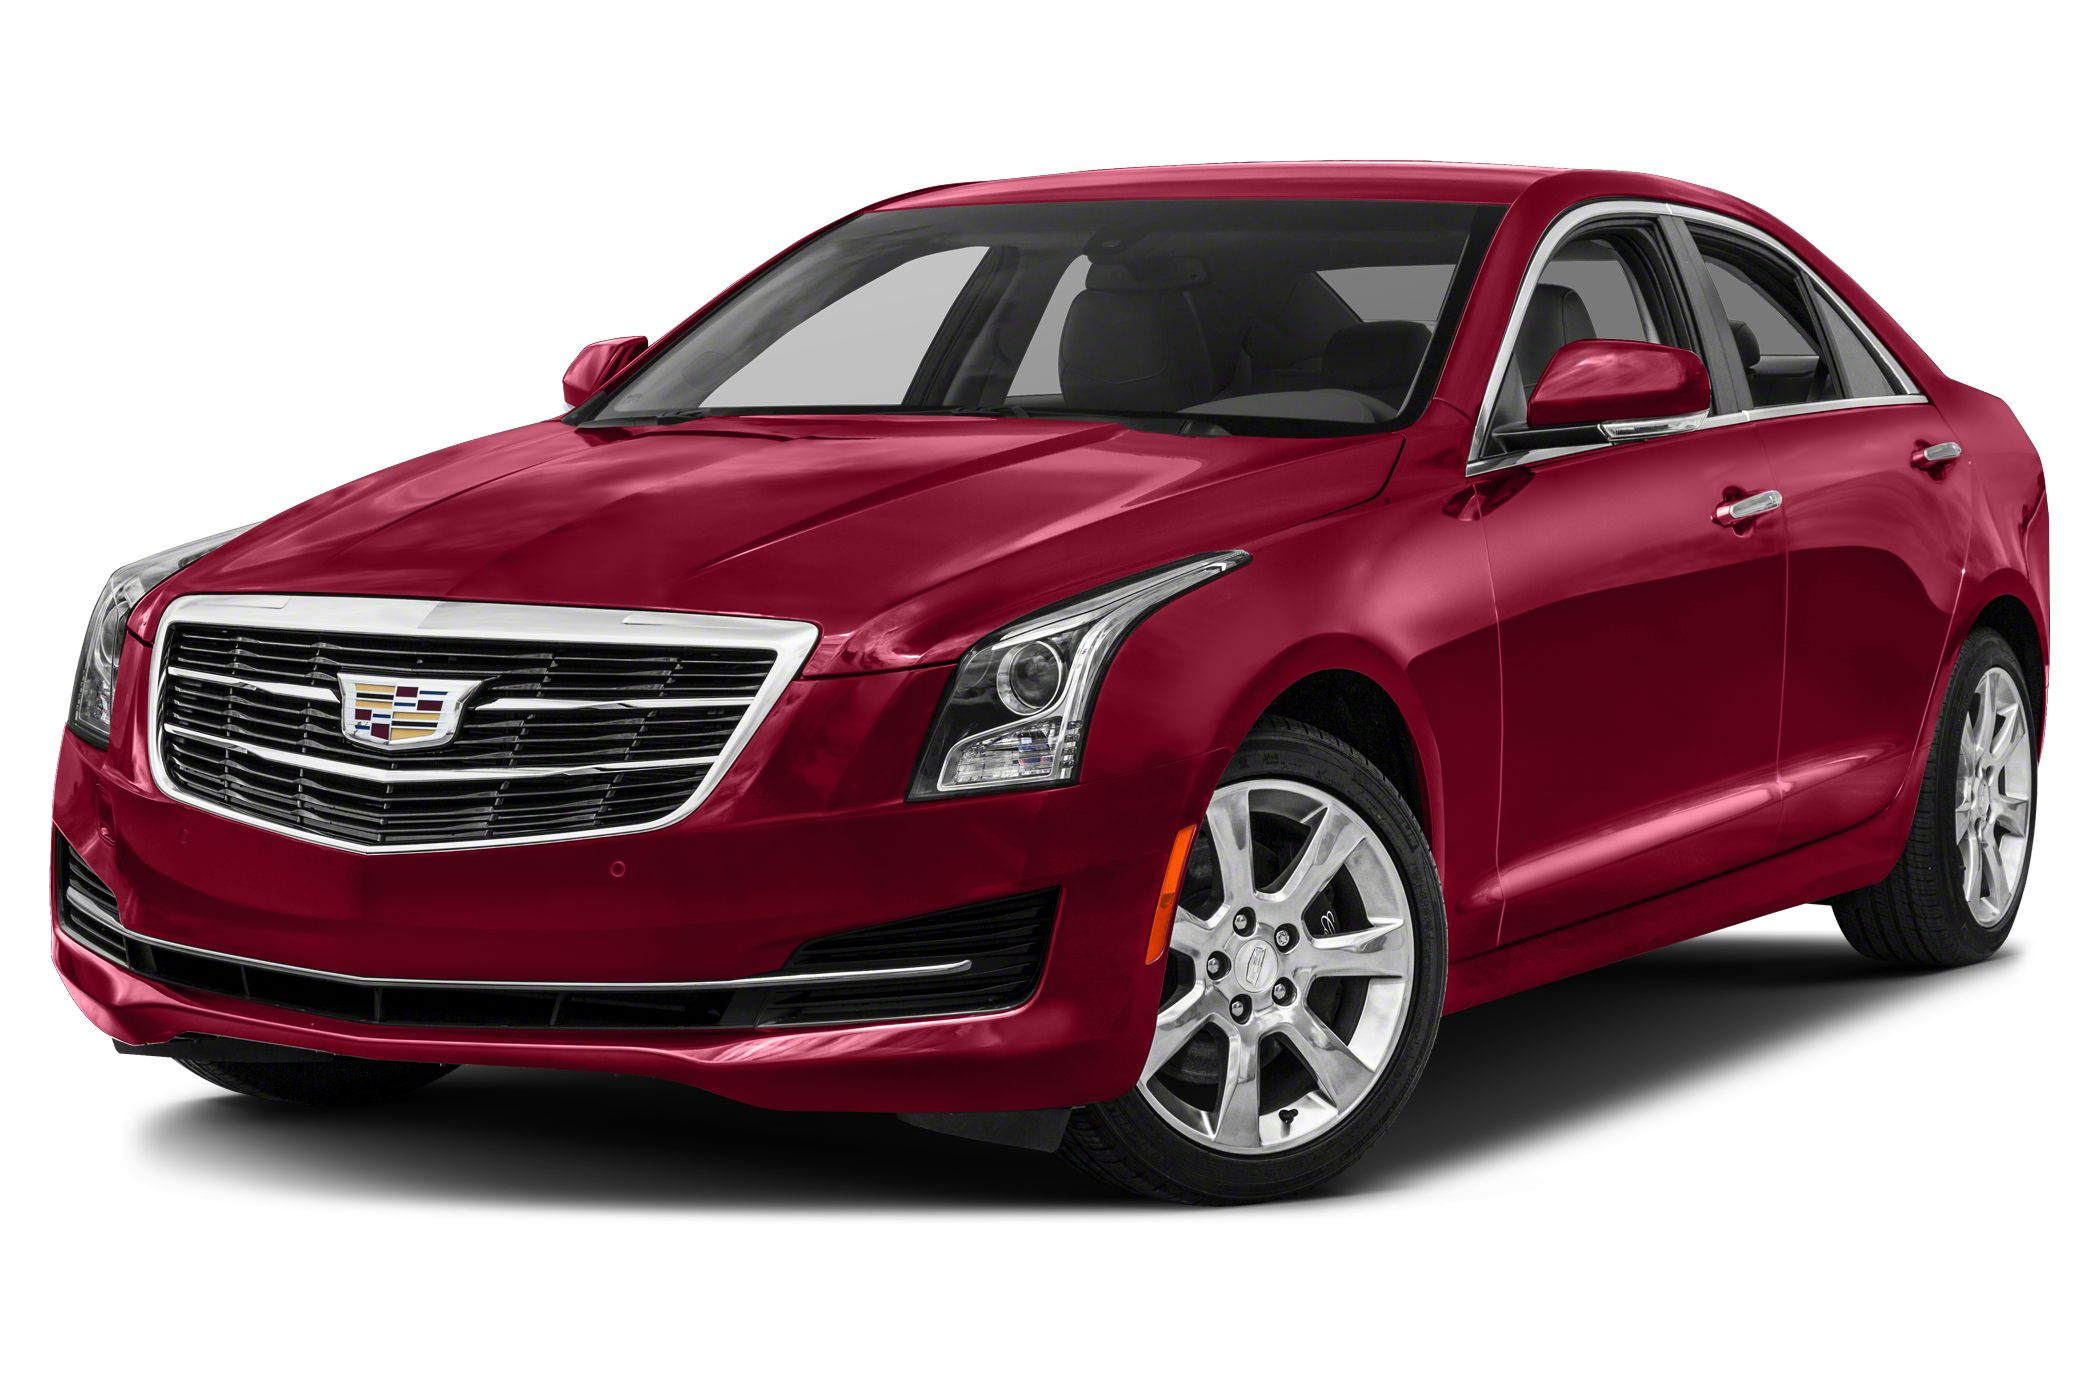 2015 Cadillac ATS 2.0L Turbo Premium Coupe for sale in Warren for $46,191 with 5 miles.